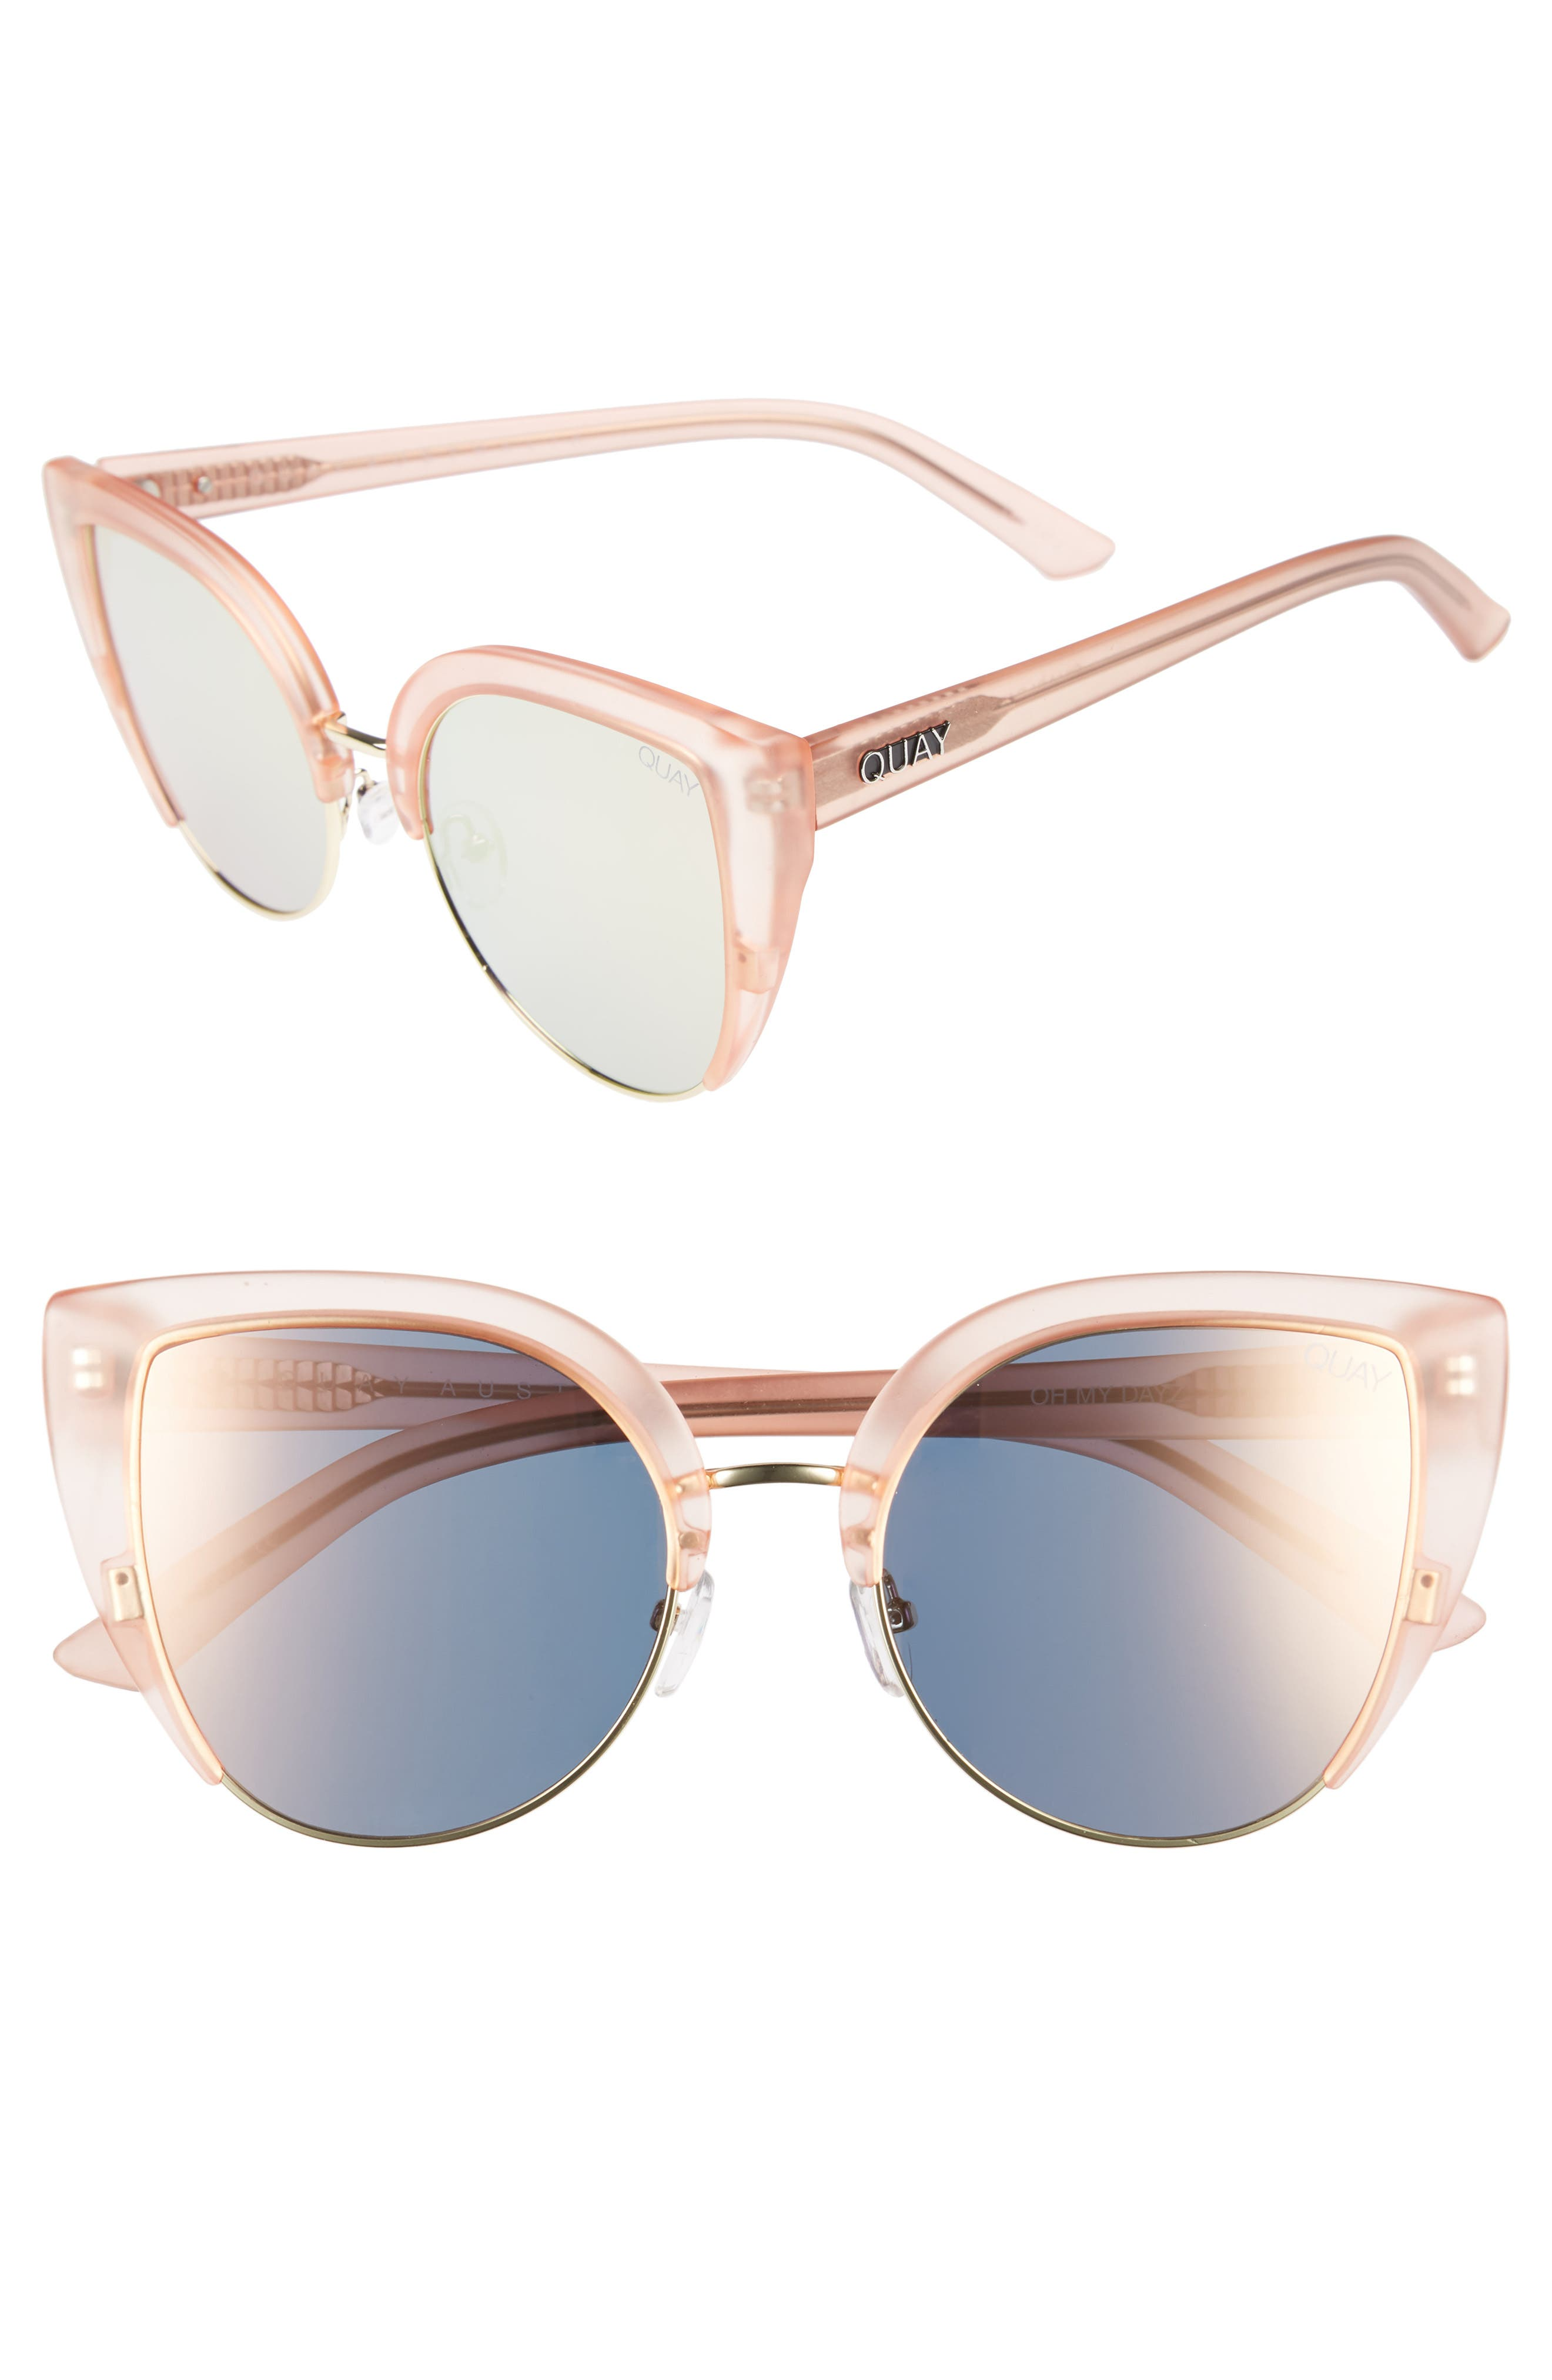 x Missguided Oh My Dayz 53mm Sunglasses,                         Main,                         color, Pink/ Gold